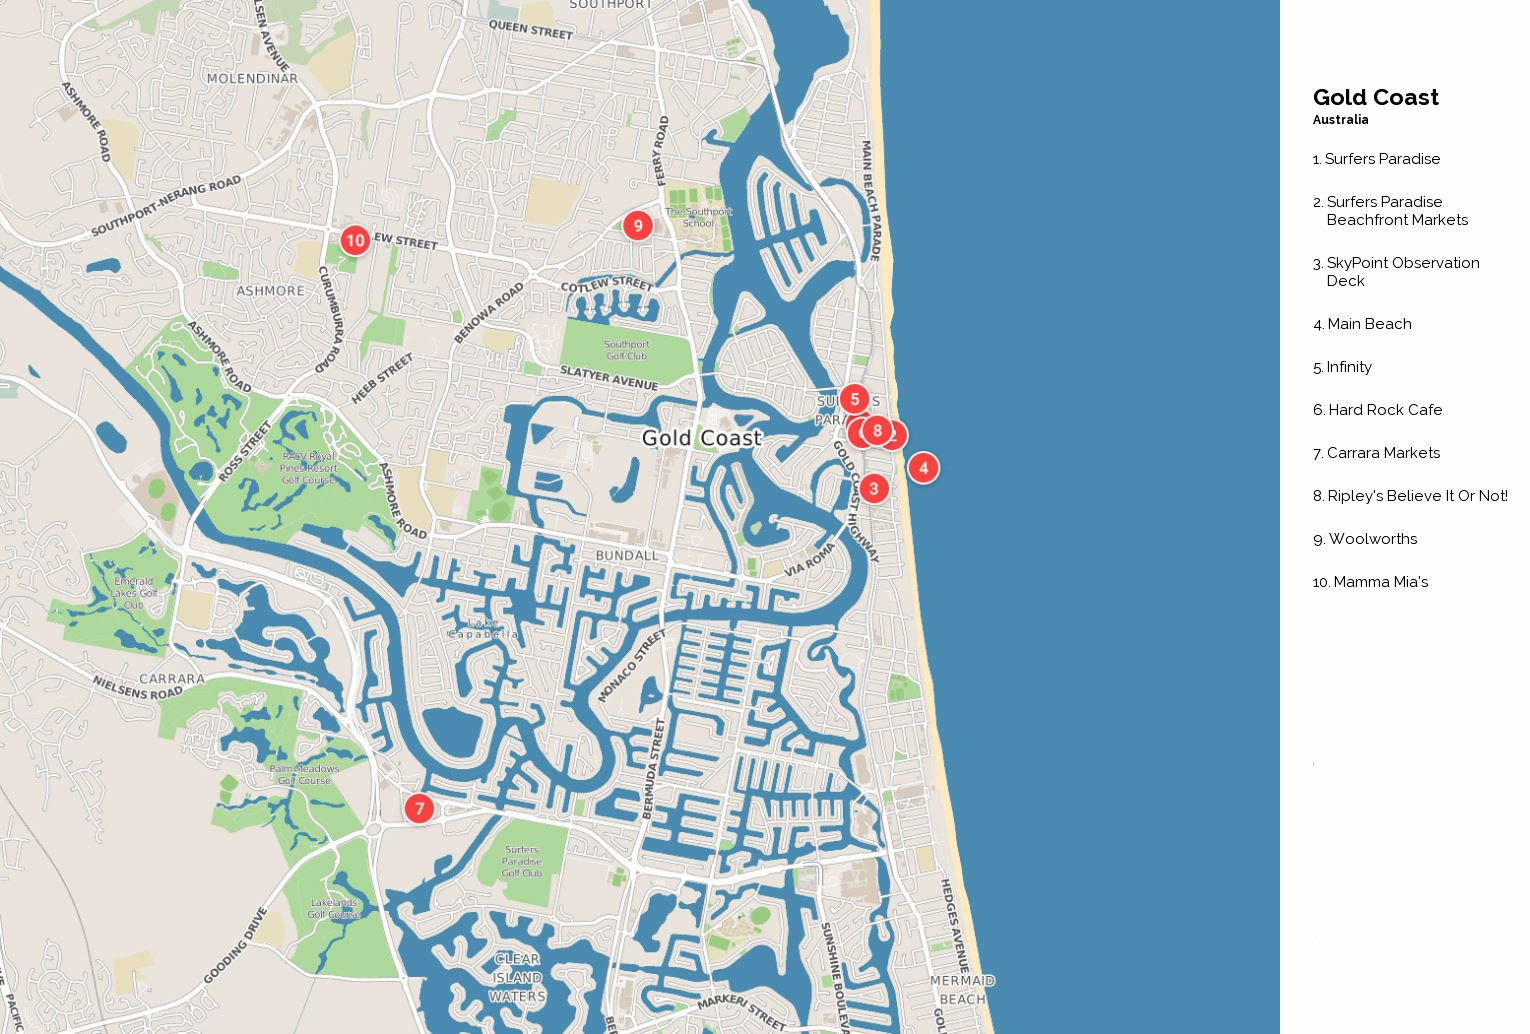 Australia Map Gold Coast.Large Gold Coast Maps For Free Download And Print High Resolution